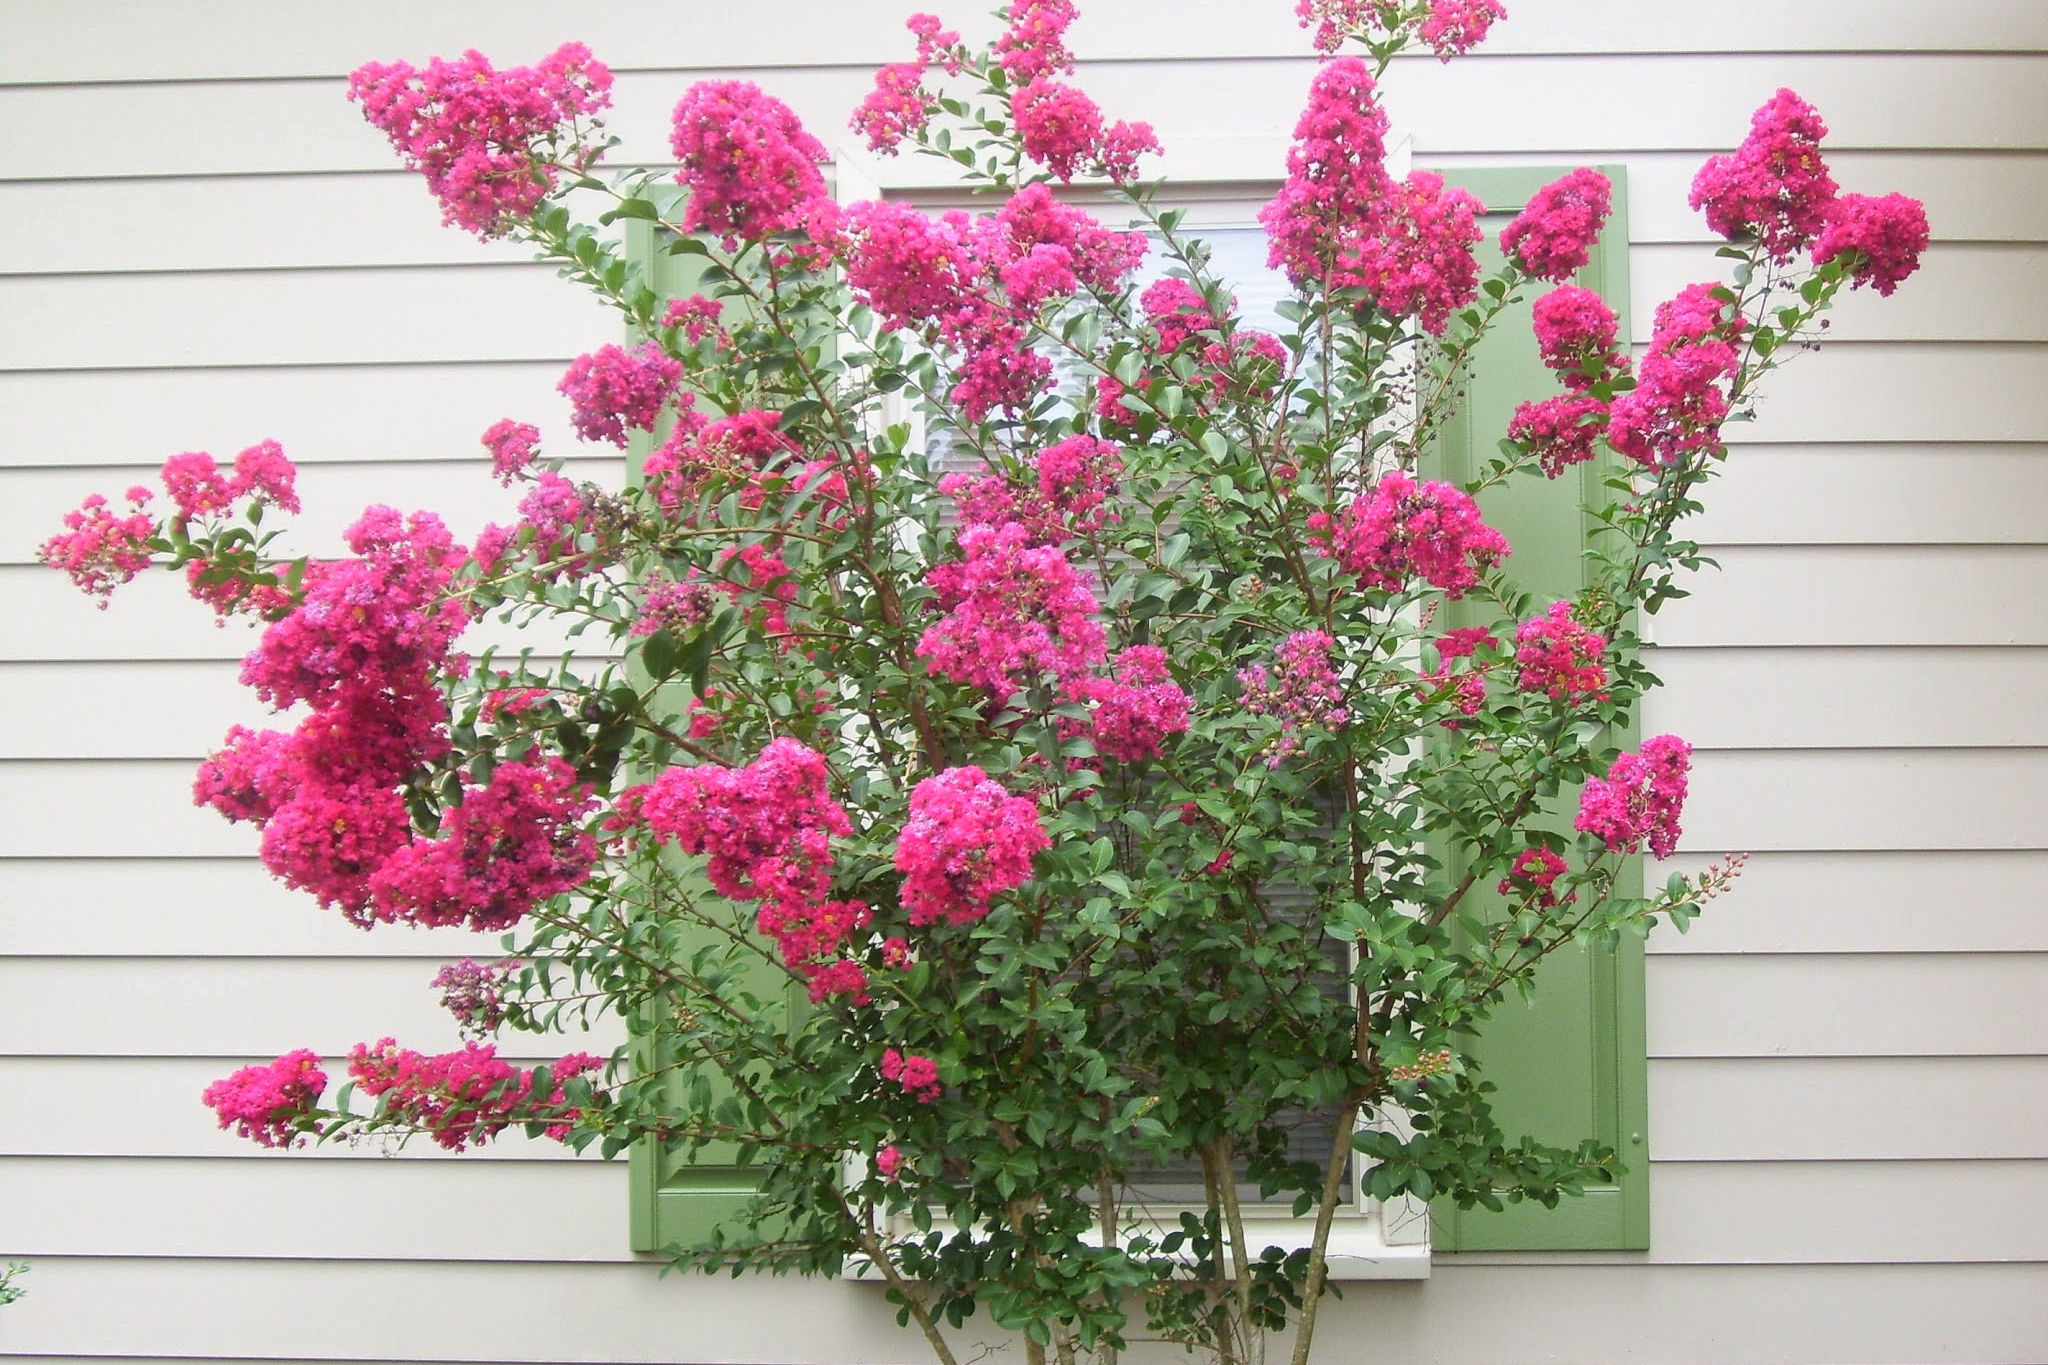 3 Terrible Places to Plant Crepe Myrtle